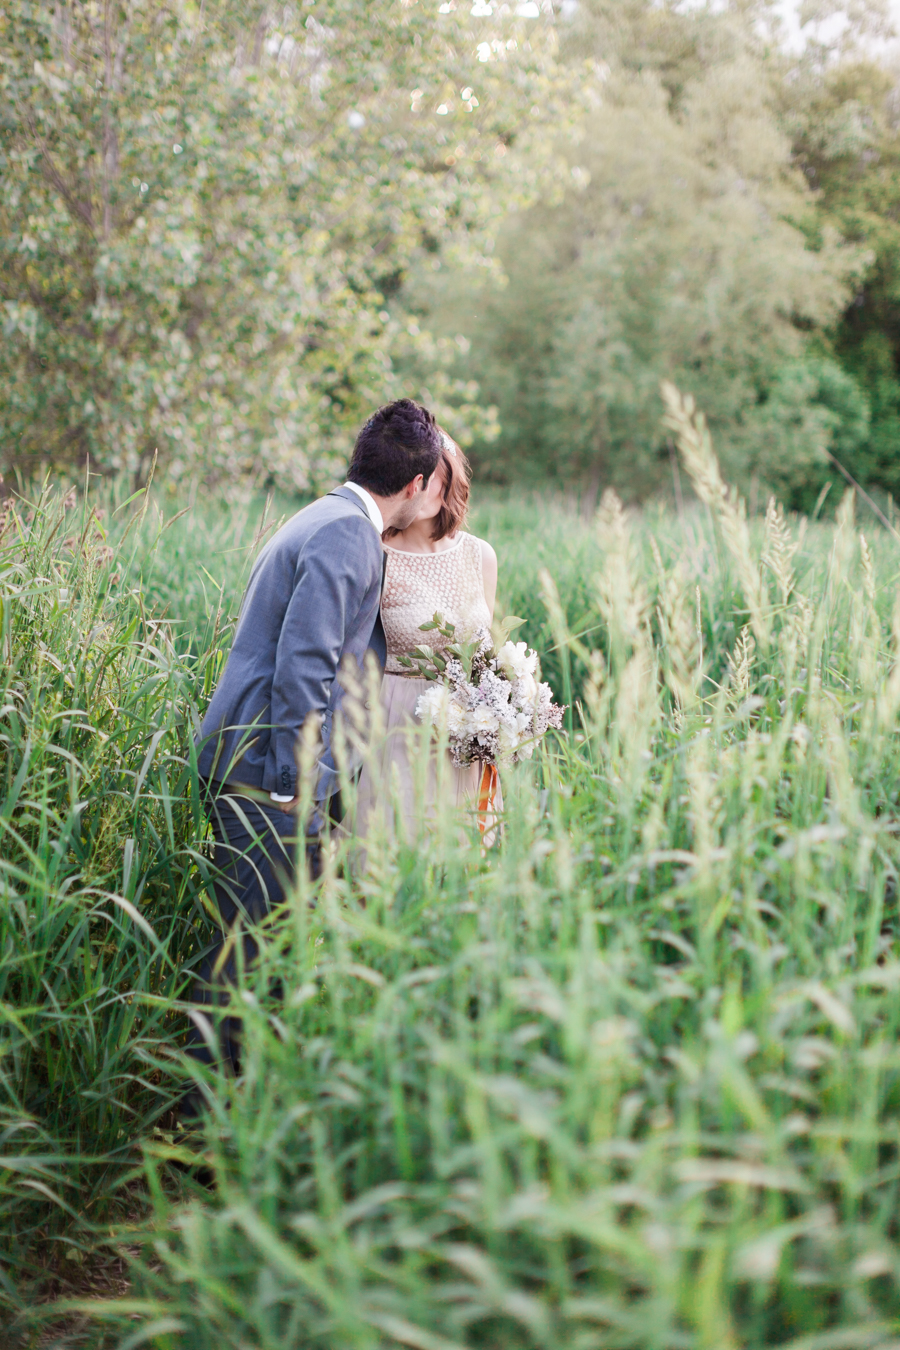 kateweinsteinphoto_megan_chris_wedding_shoot_3.jpg